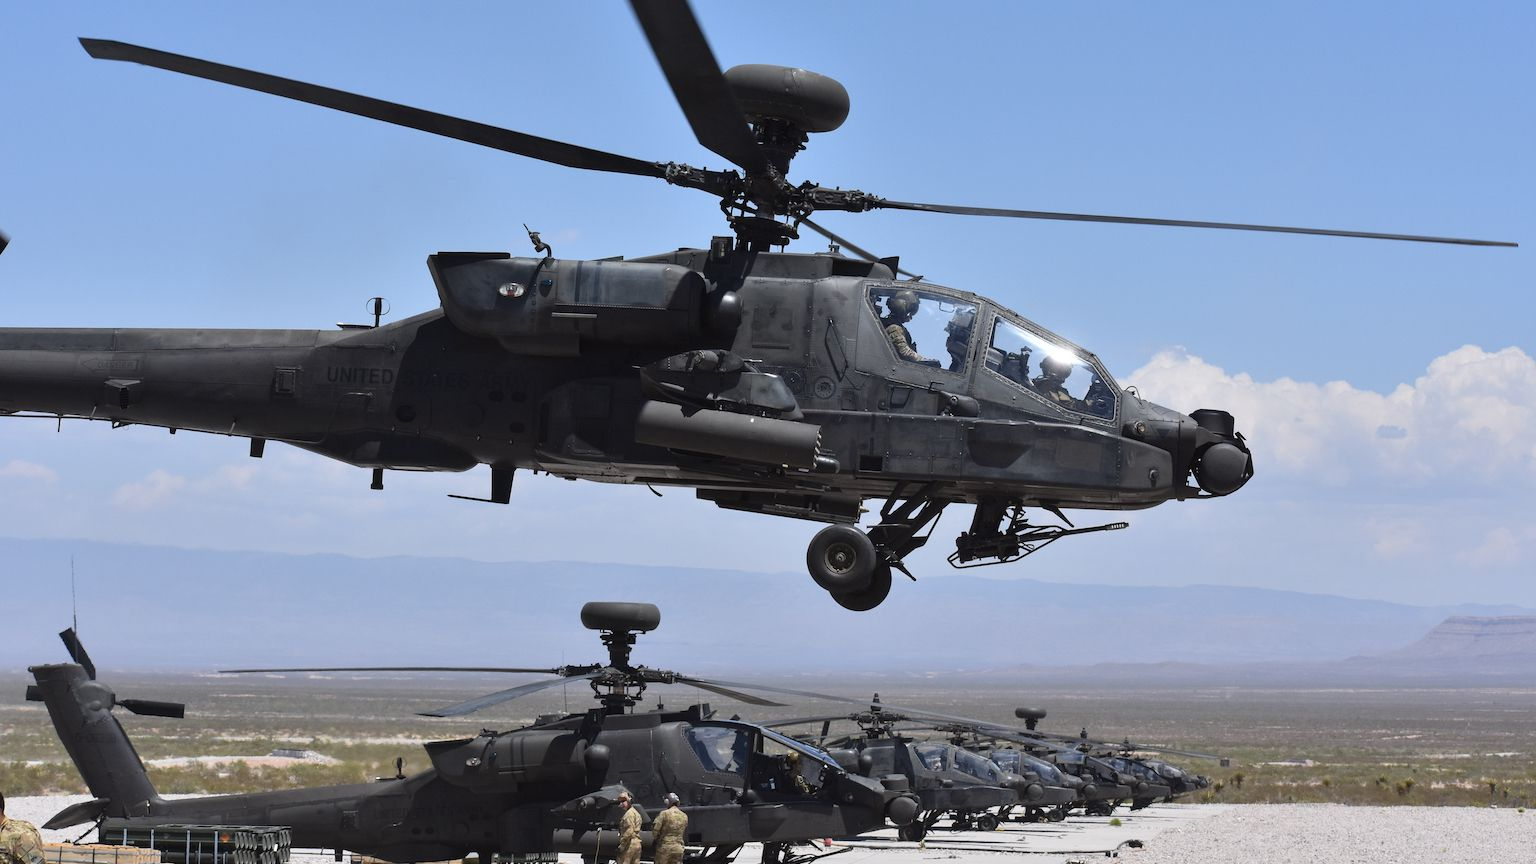 Apache helicopter, Apache Guardian attack helicopters, Indian Air Force, Boeing, United States, America, India, National news